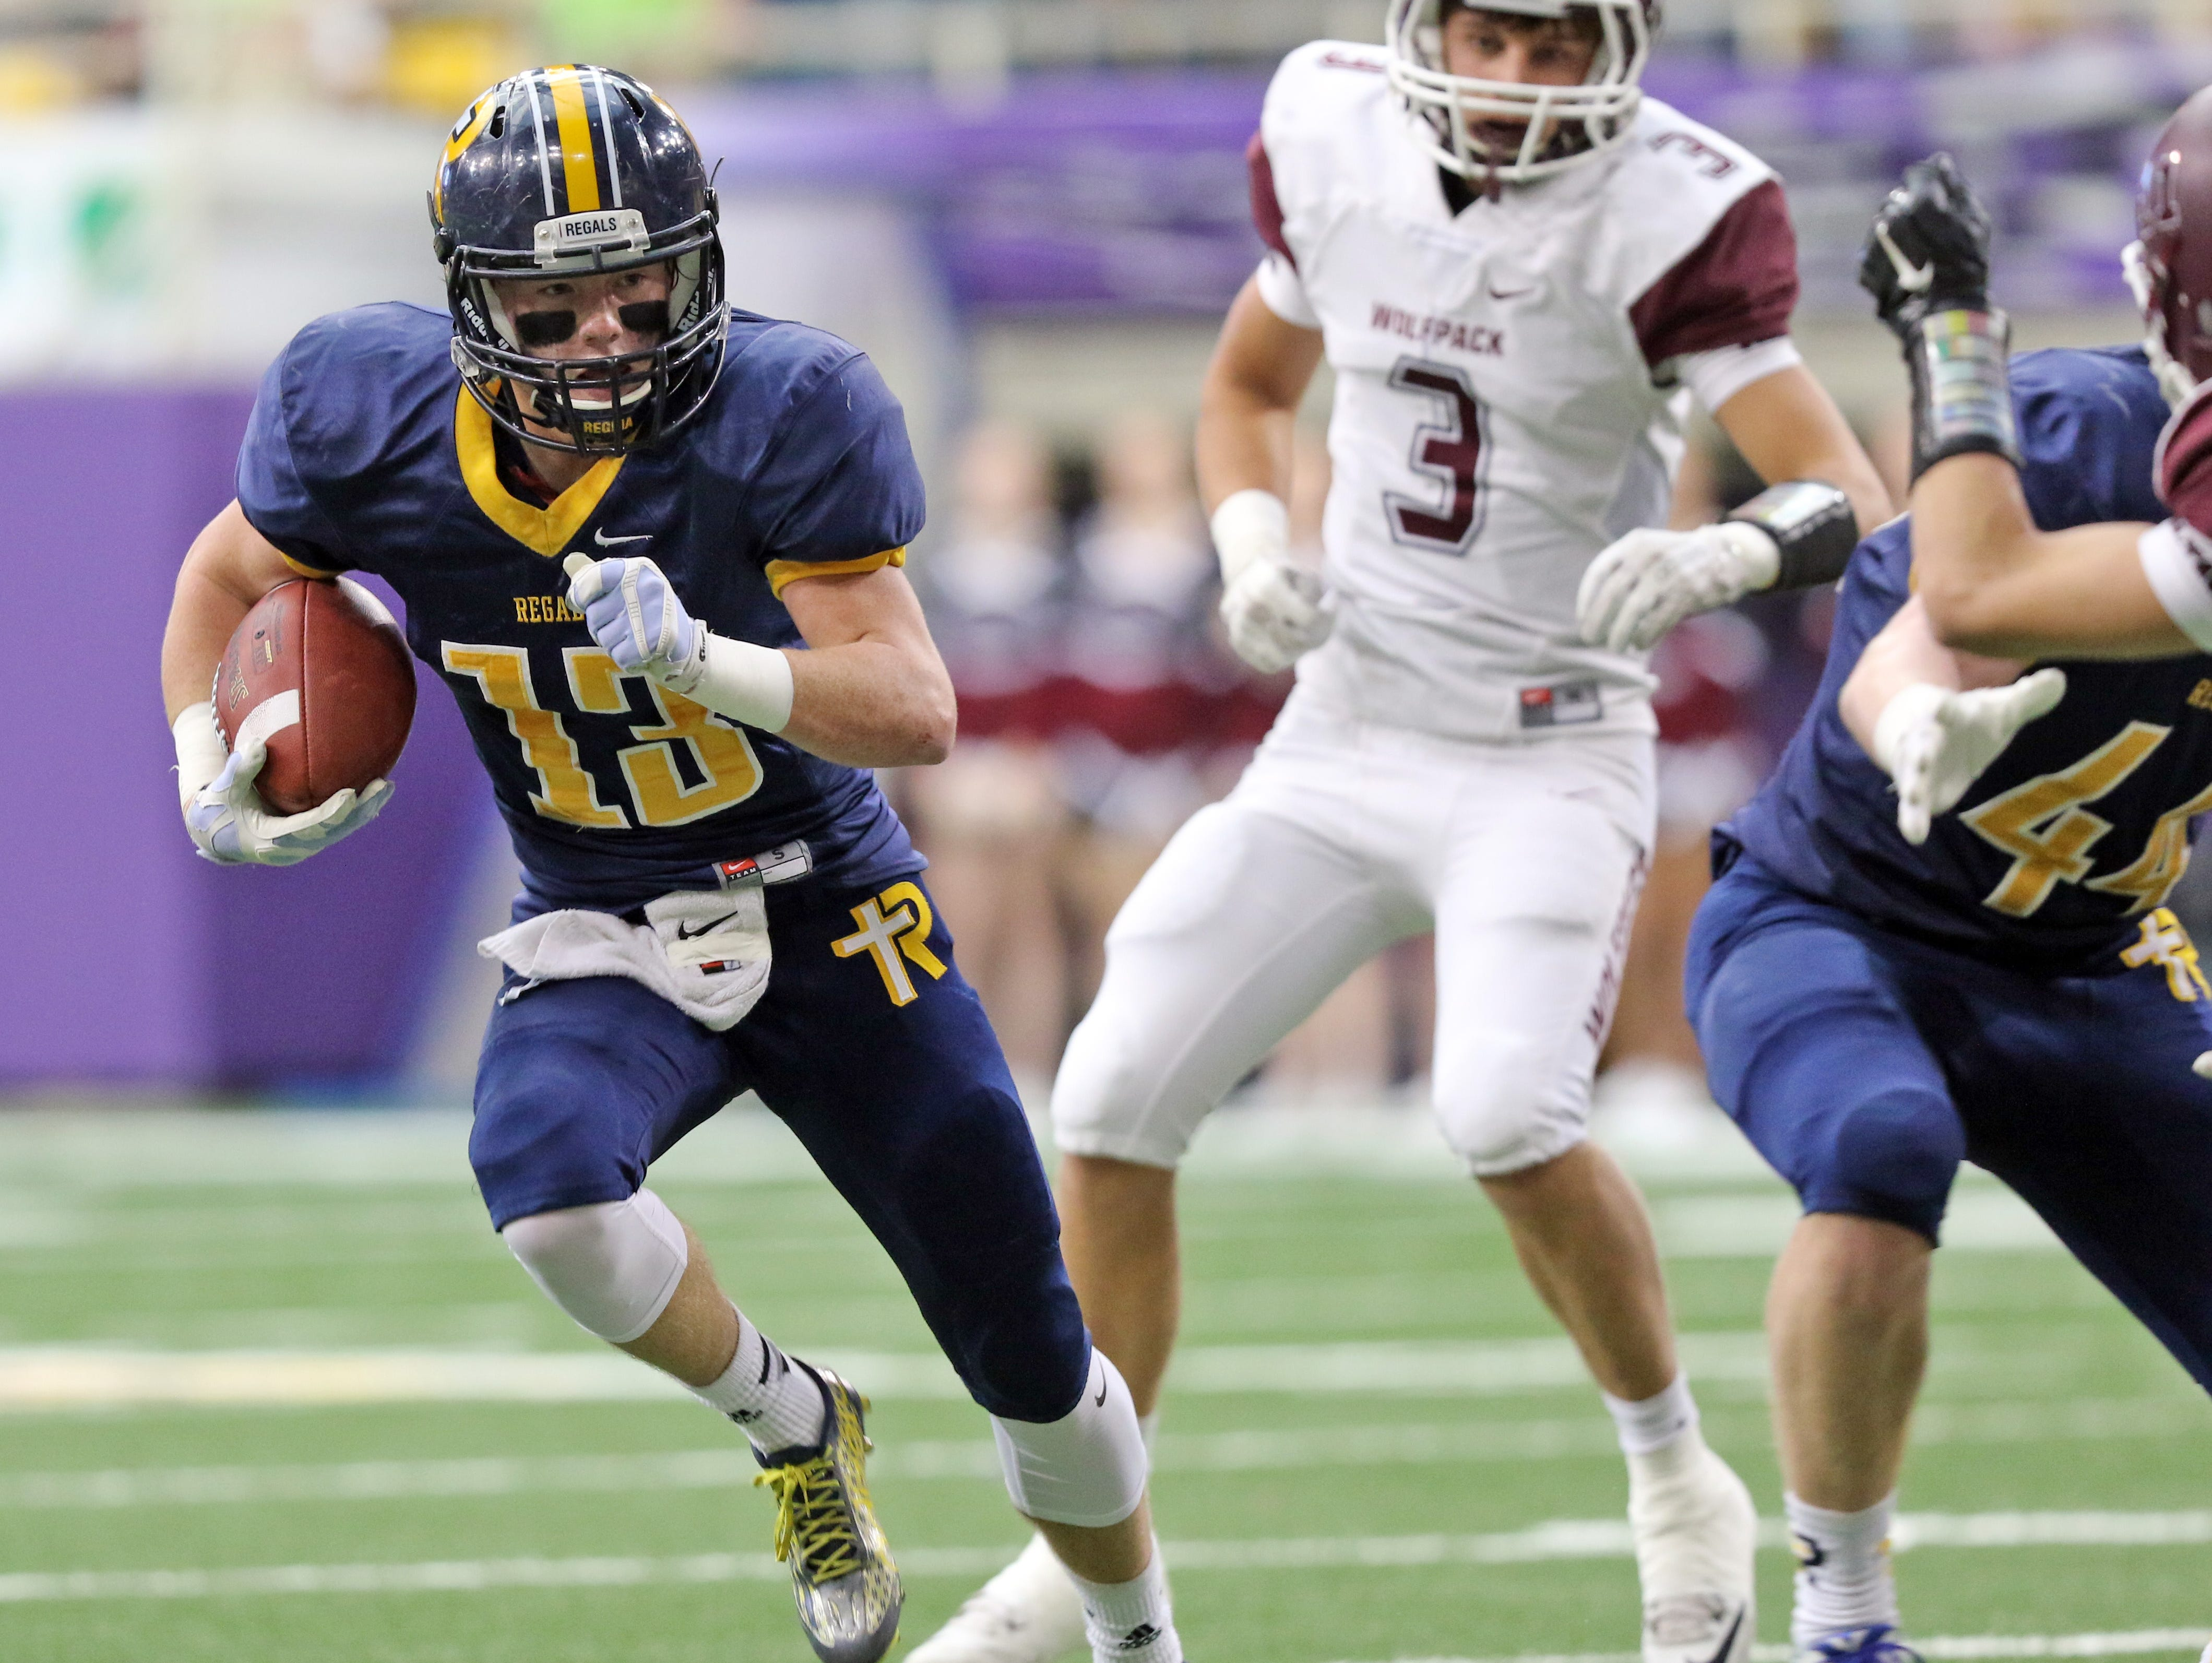 Ethan Suchomel of Iowa City Regina runs the ball in the Class 1A Championship game with Western Christian Hull Monday, Nov. 23, 2015.